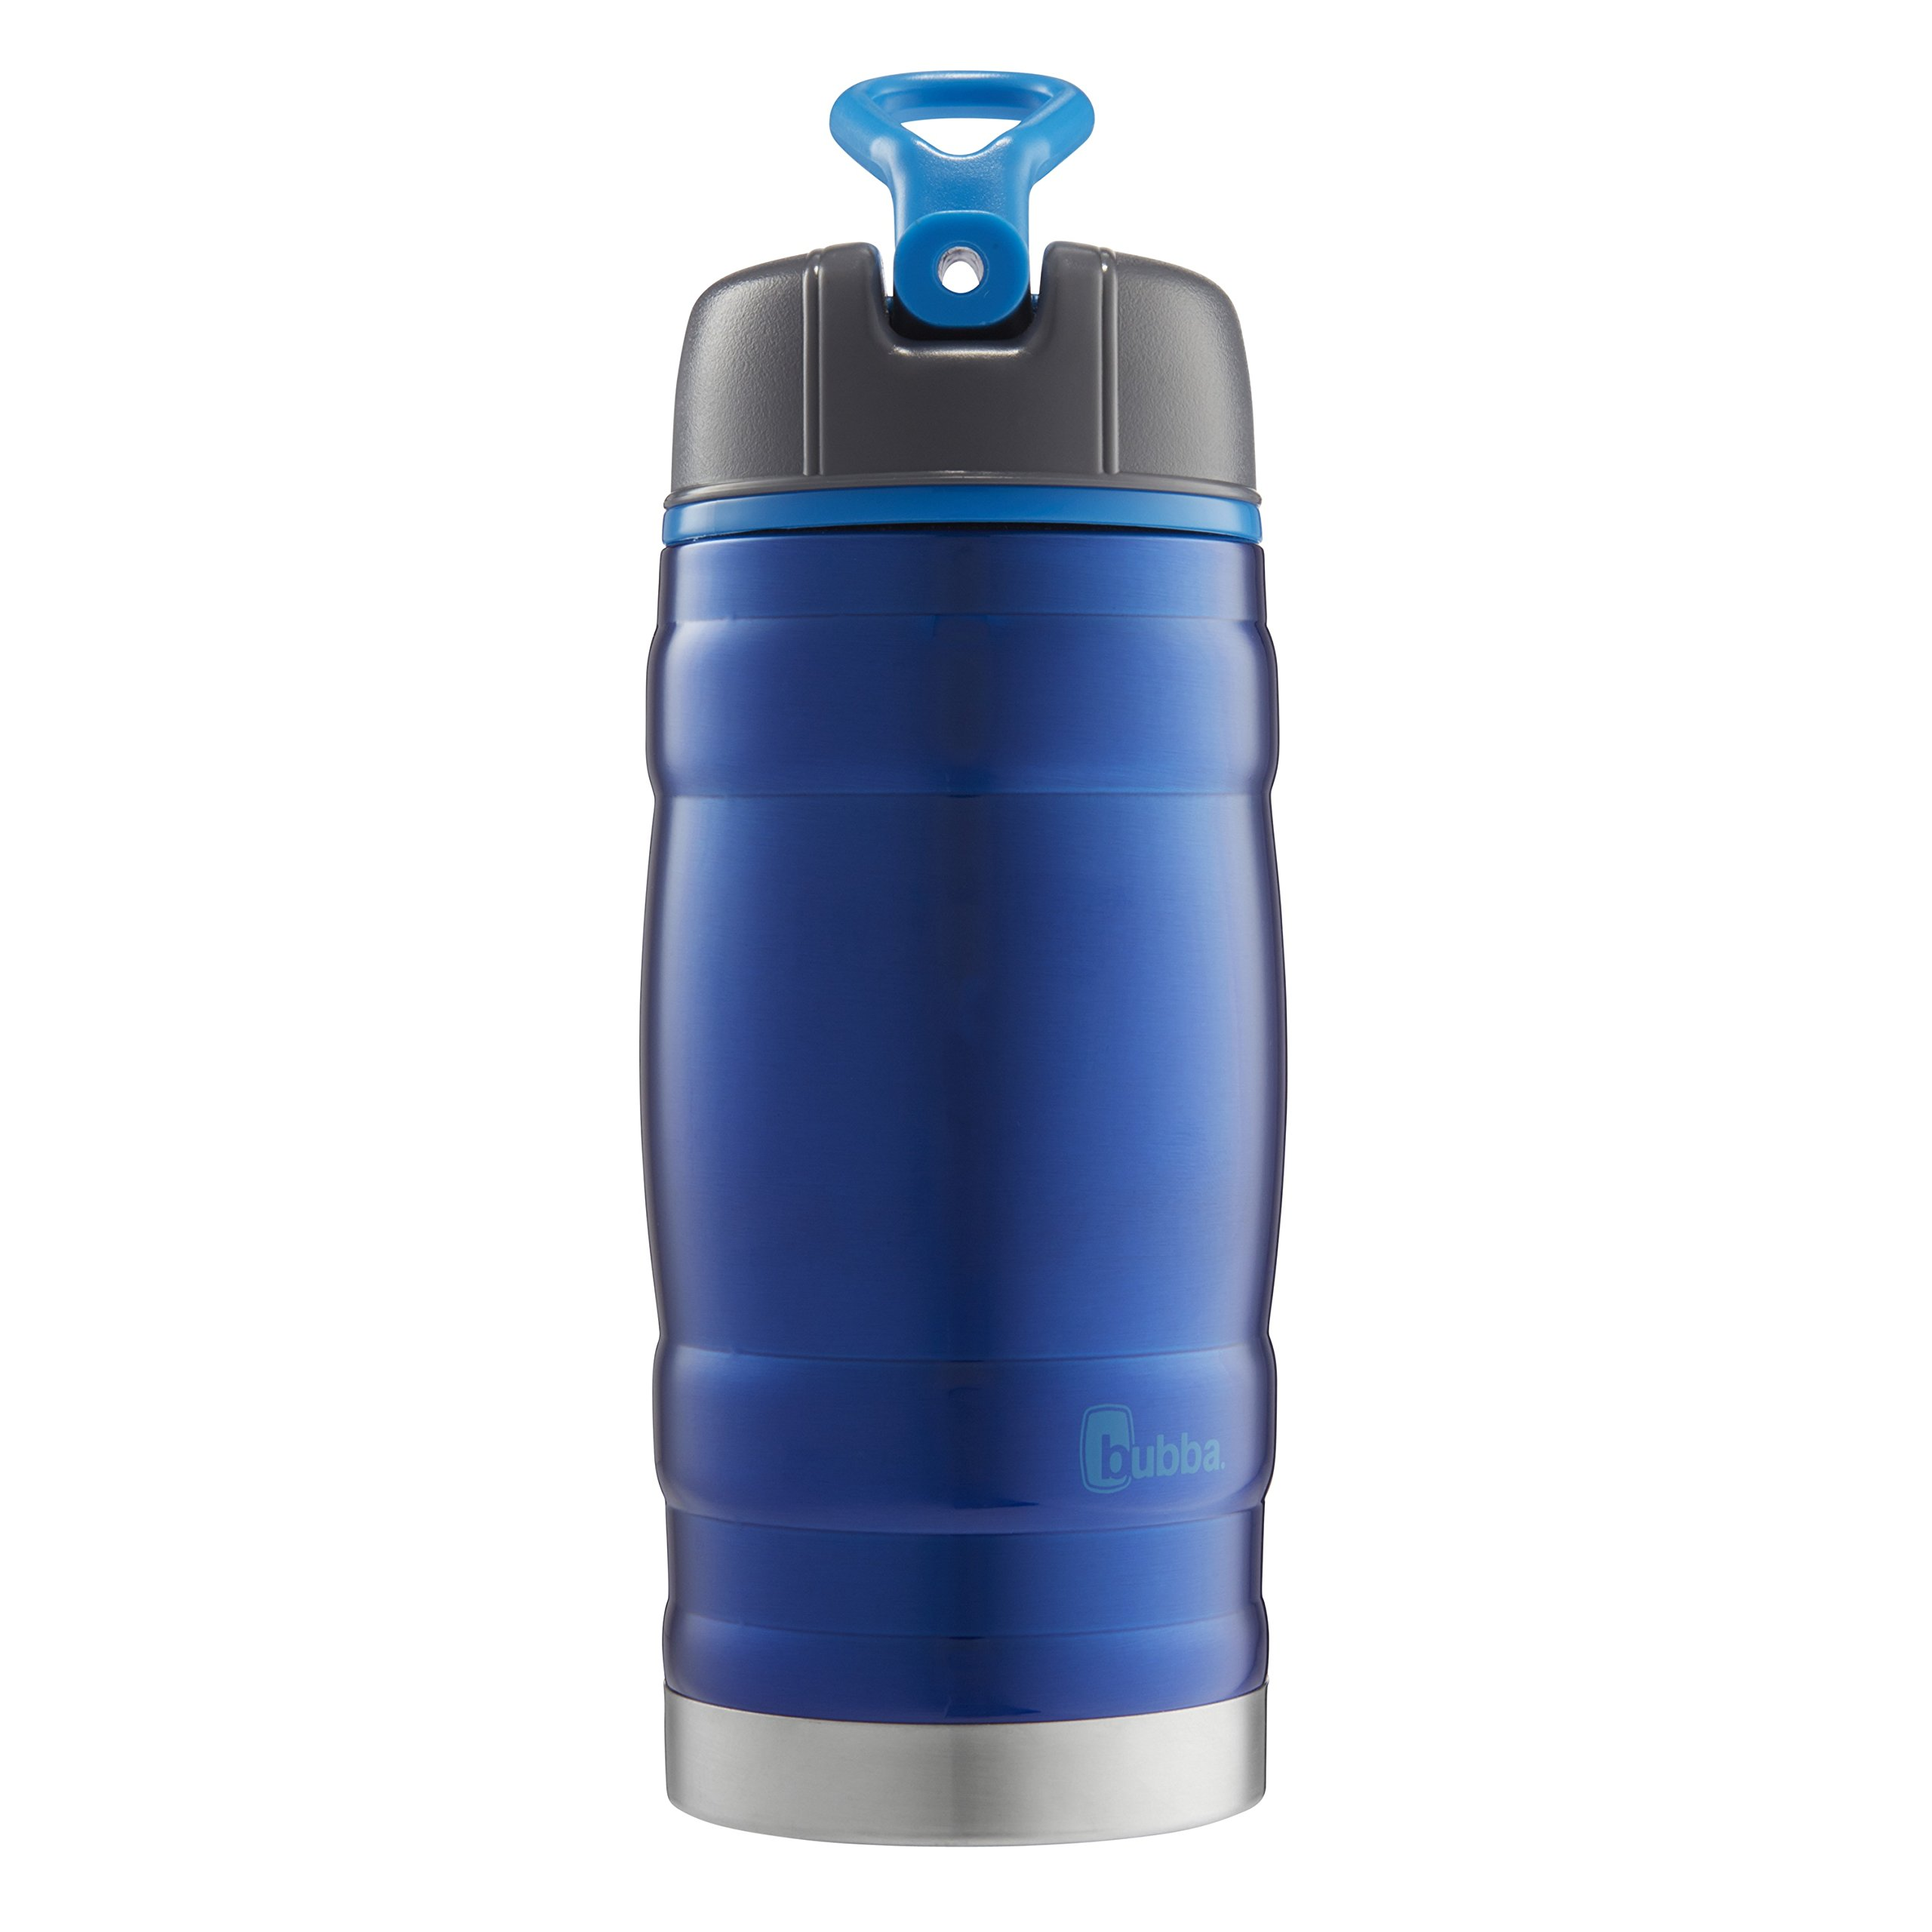 Bubba HERO Kids Sport Vacuum-Insulated Stainless Steel Water Bottle, 12 oz, Blue